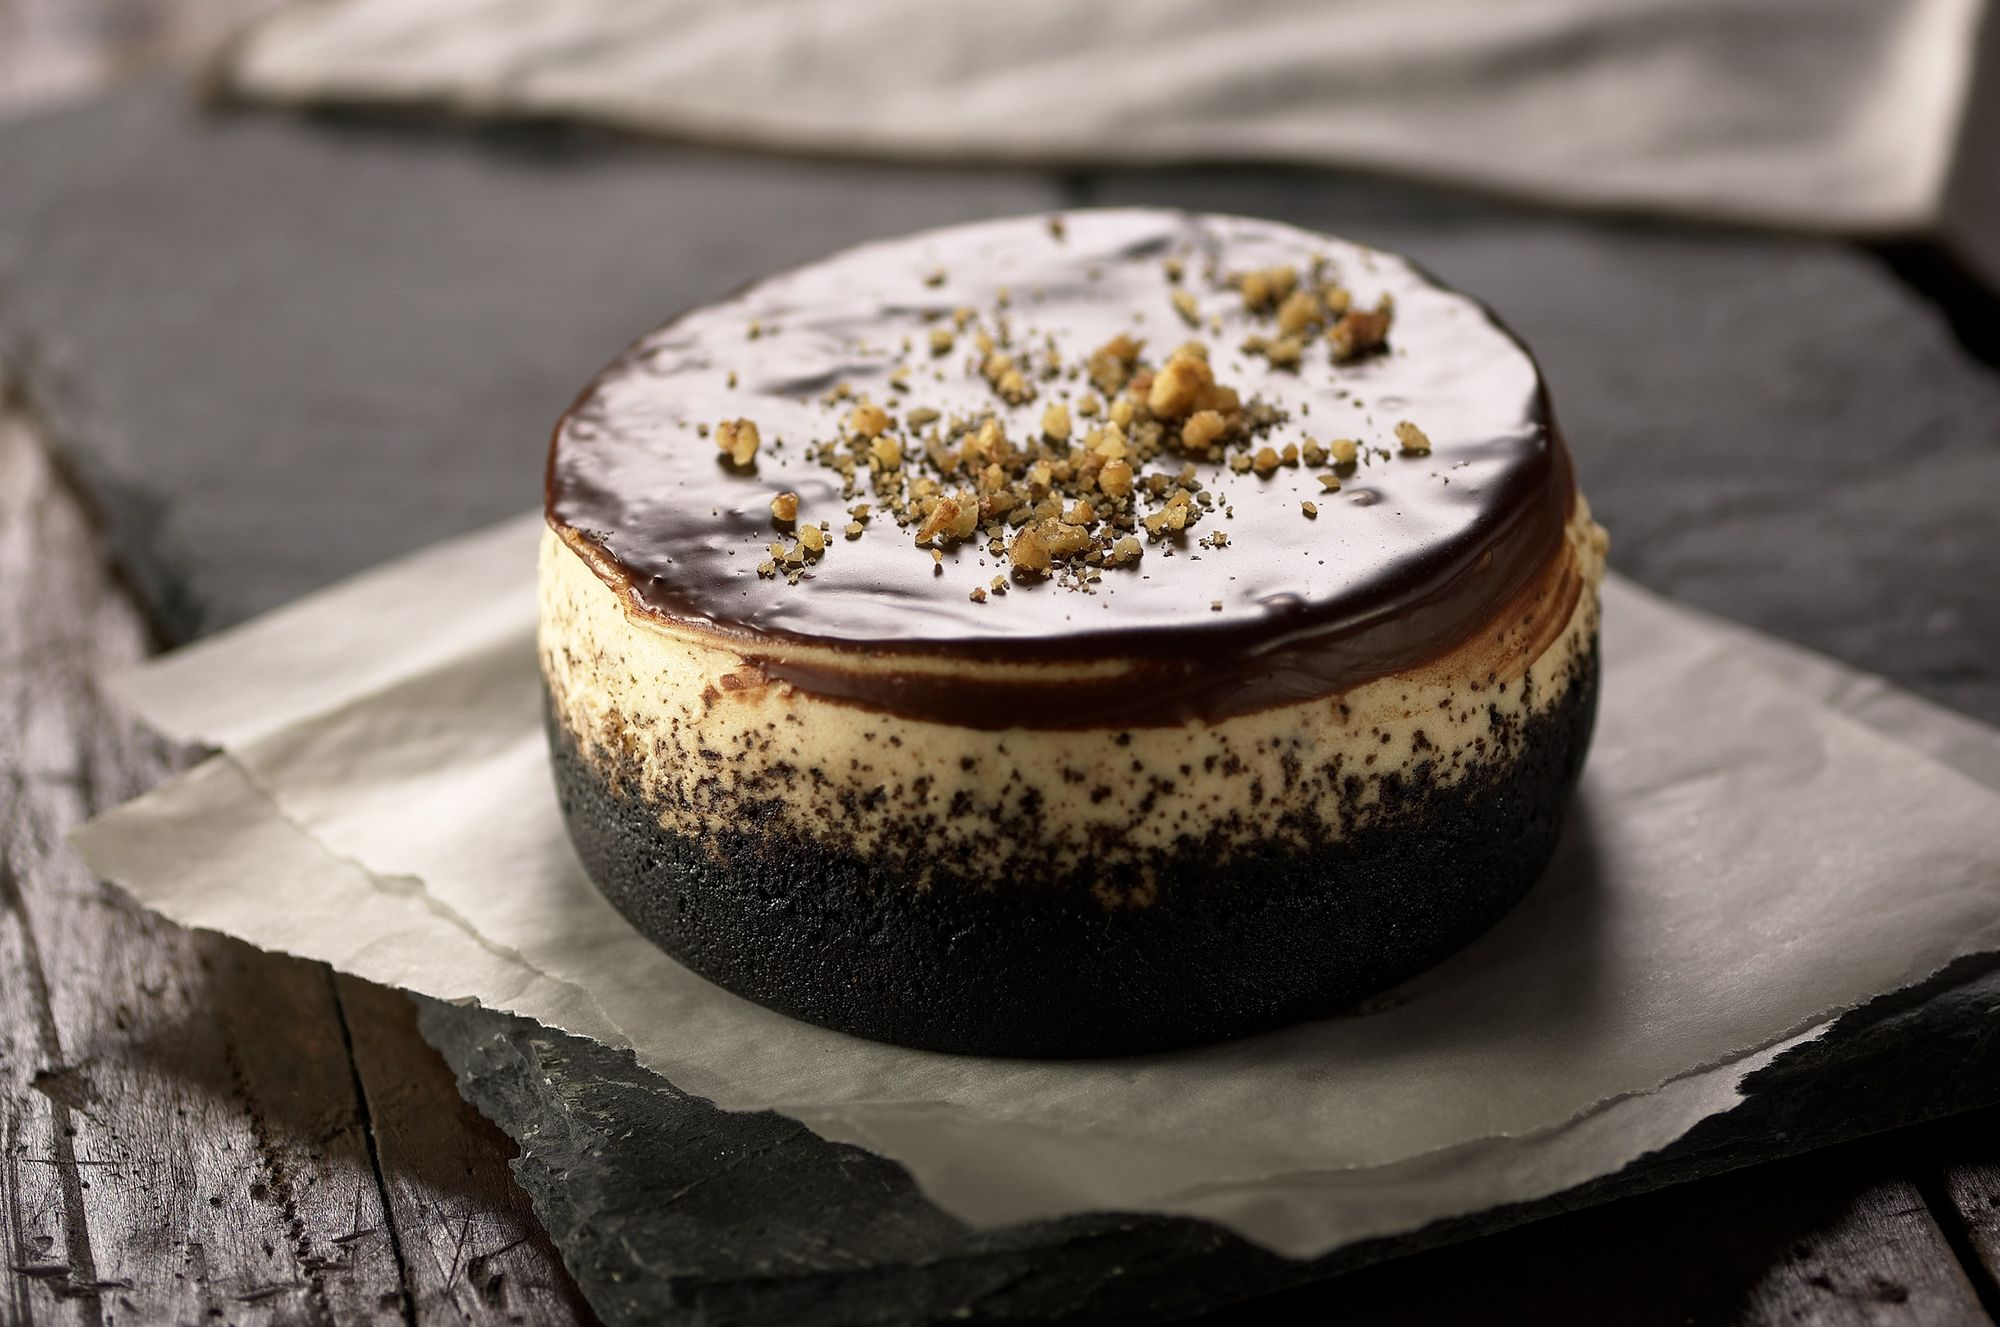 Food-Chocolate Cheesecake-dessert.jpg